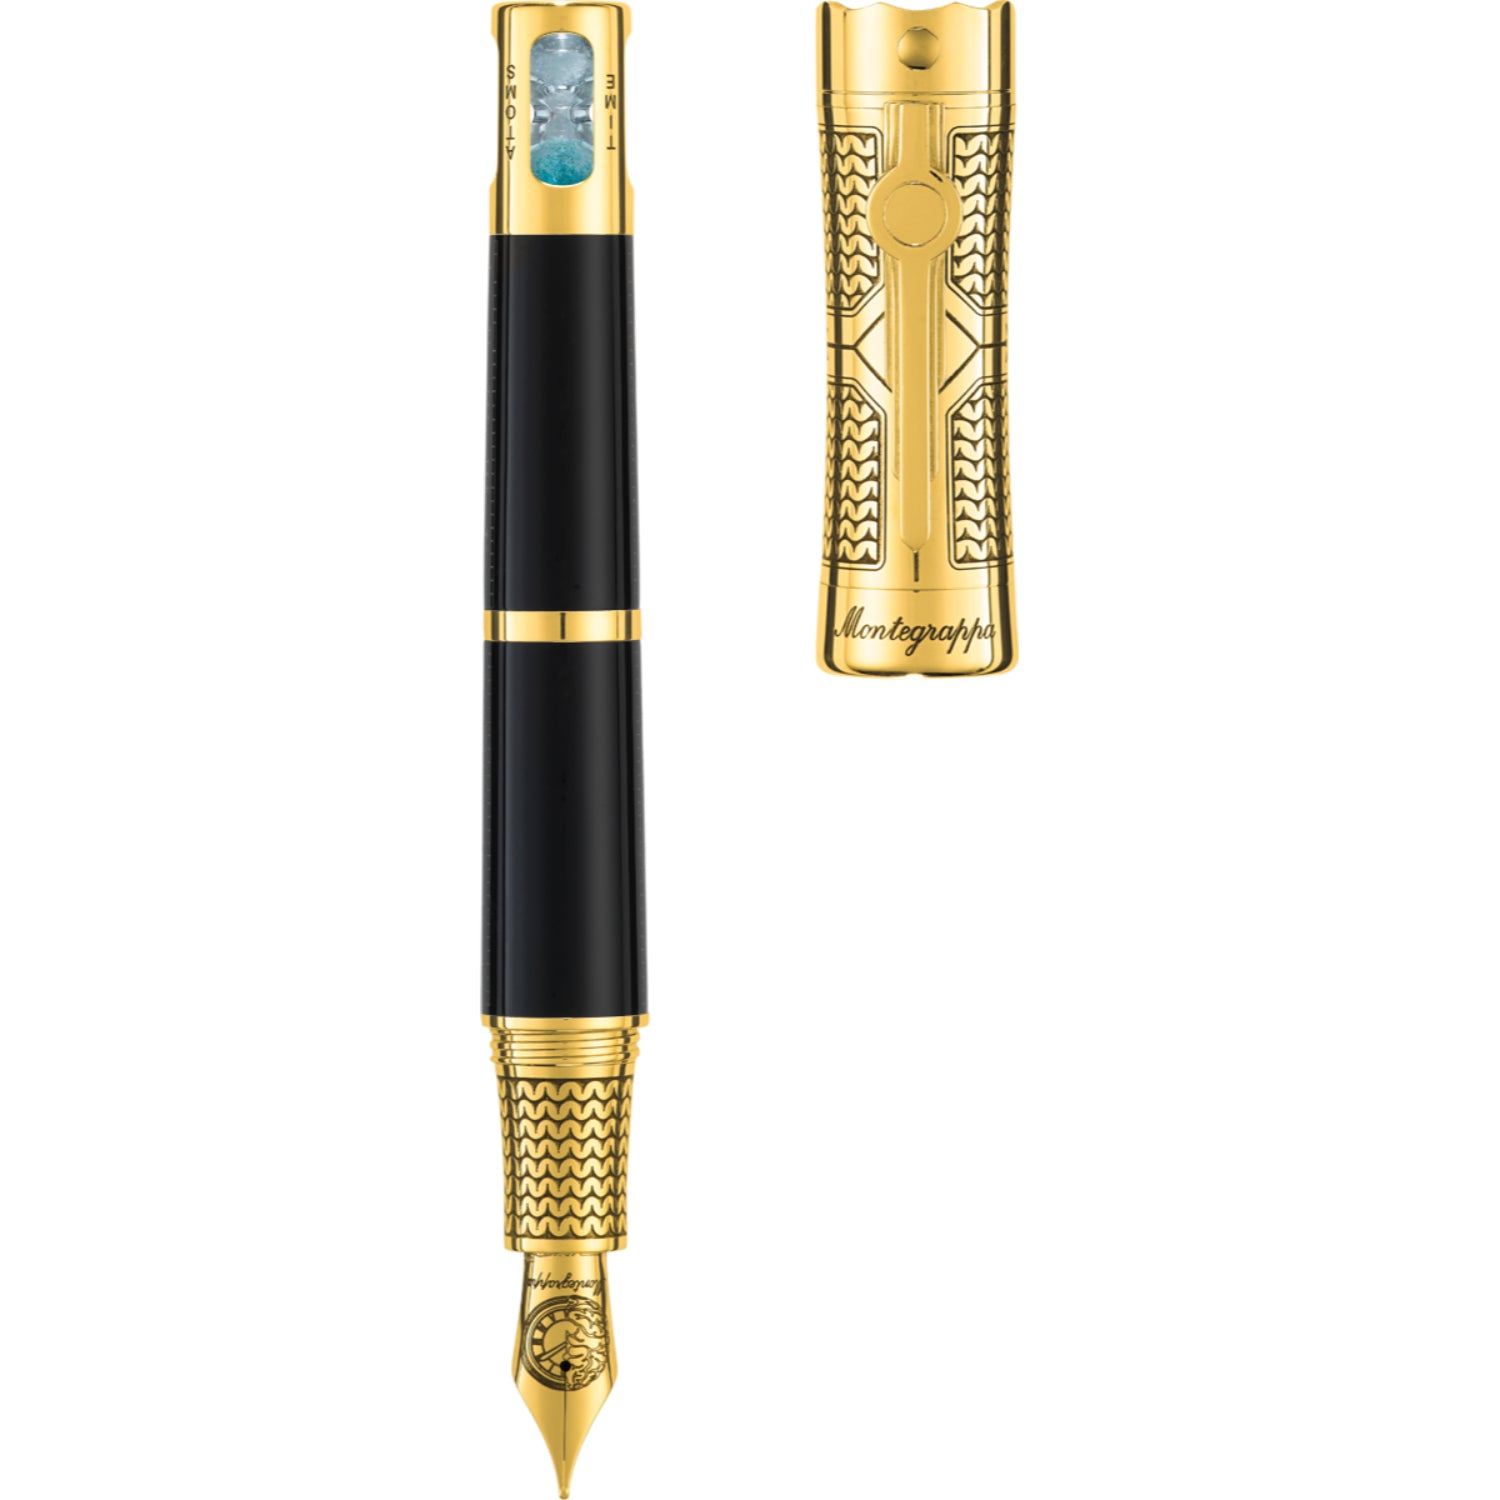 Time&Brain L.E. Fountain Pen, Gold, Fine